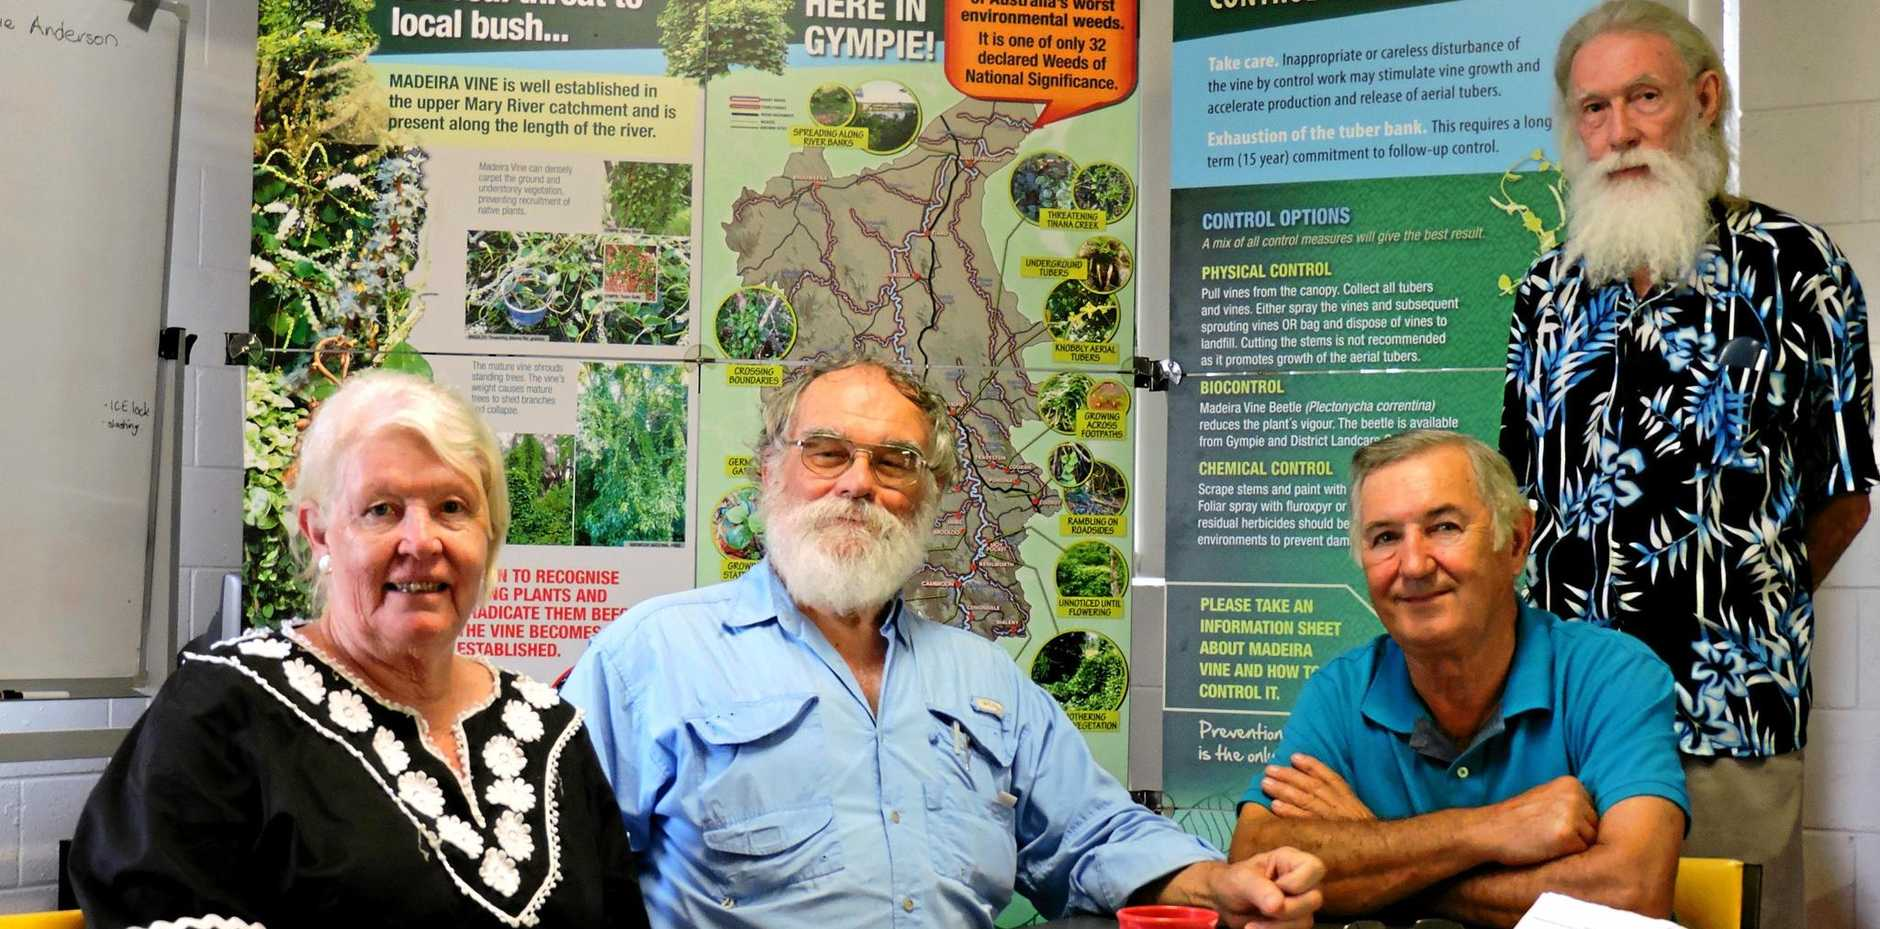 BACK AGAIN: Gympie Landcare office bearers re-elected for a further term were Gloria Robertson, Ernie Rider, David Rowlands and Kevin Jackson.